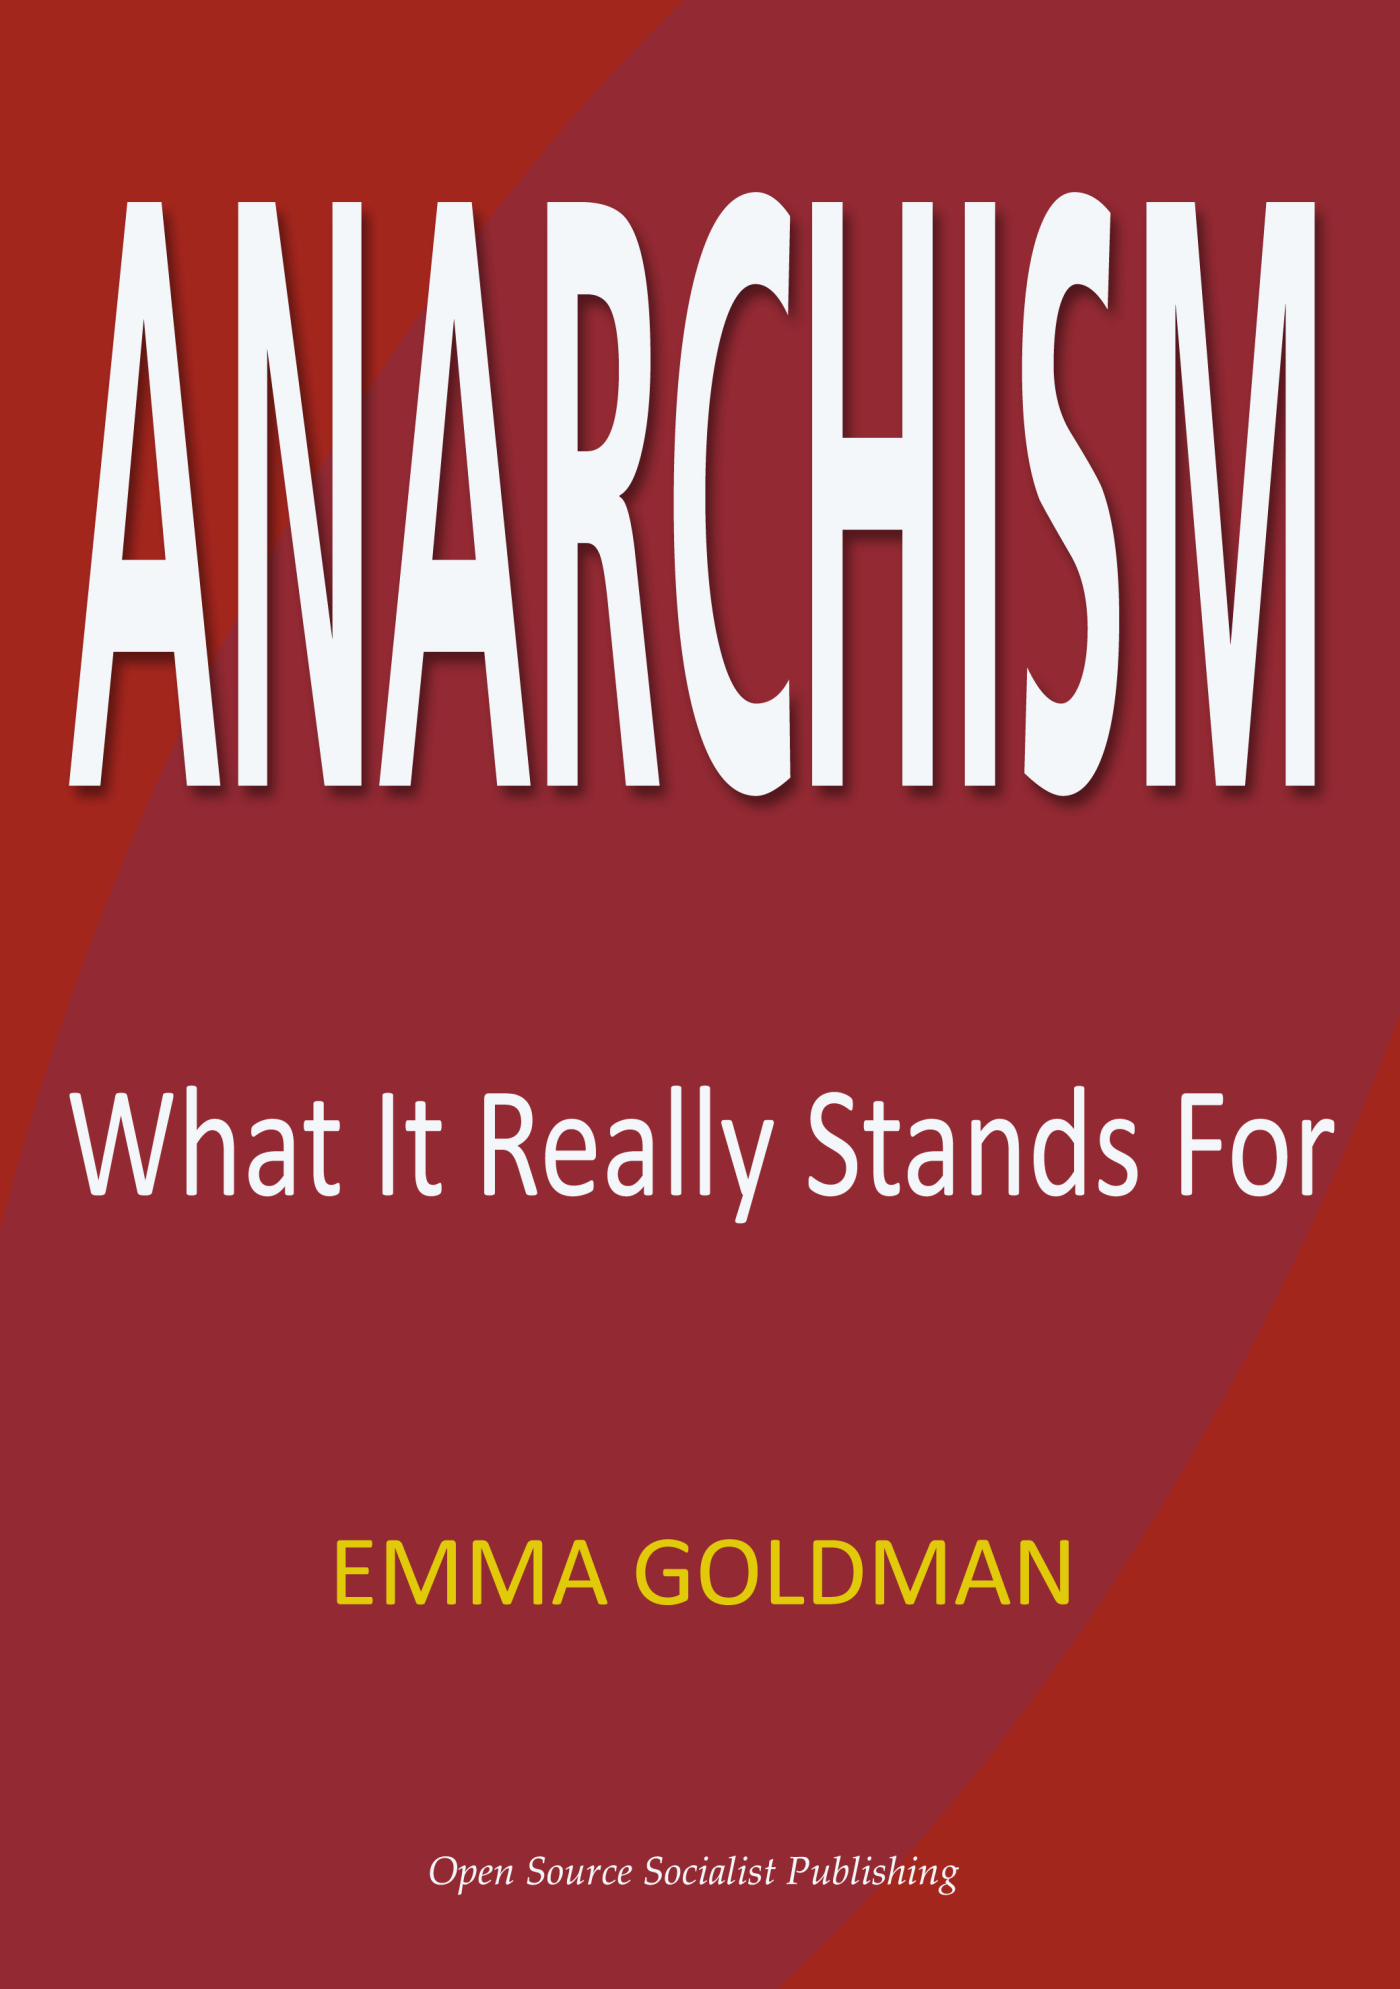 017 Essay Example Anarchism And Other Essays Anarch Wirsf Incredible Emma Goldman Summary Pdf Full